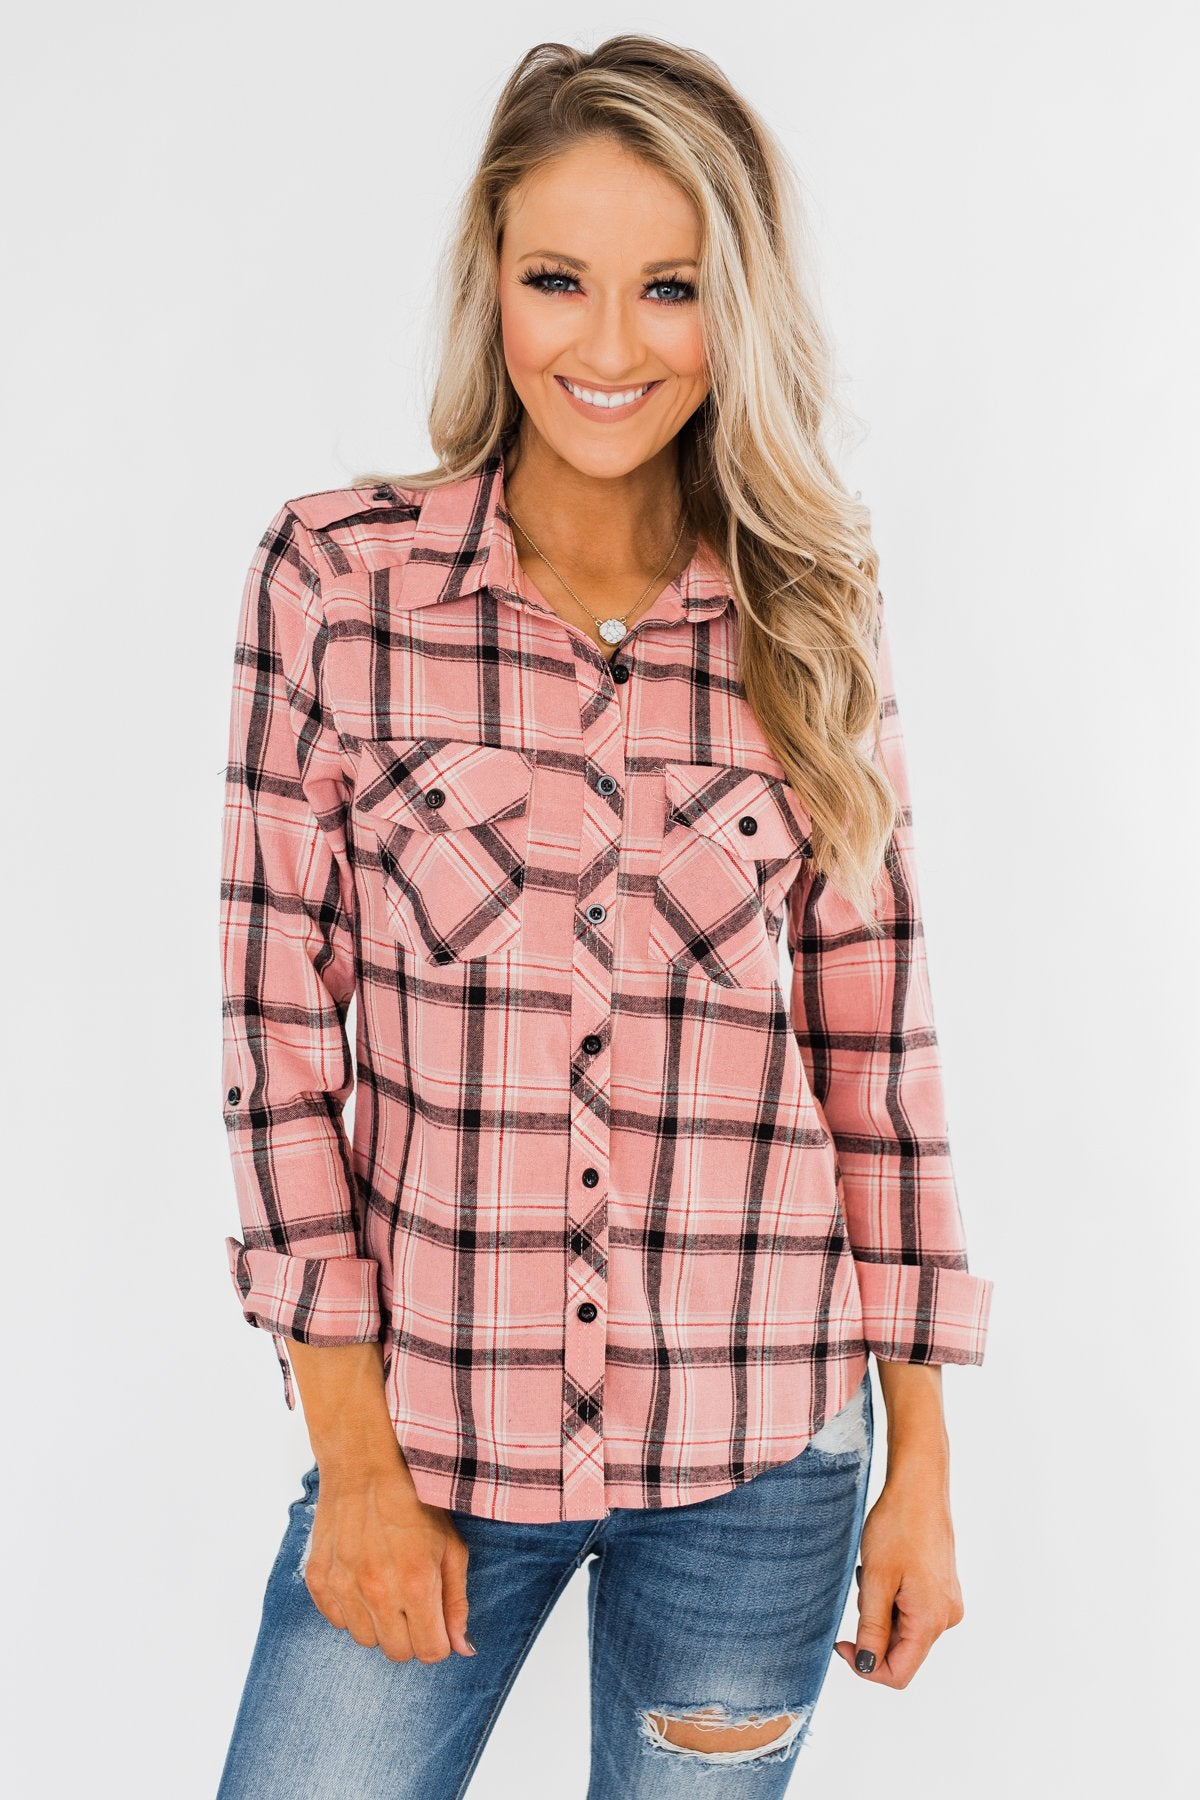 I've Been Told Long Sleeve Plaid Top- Light Pink